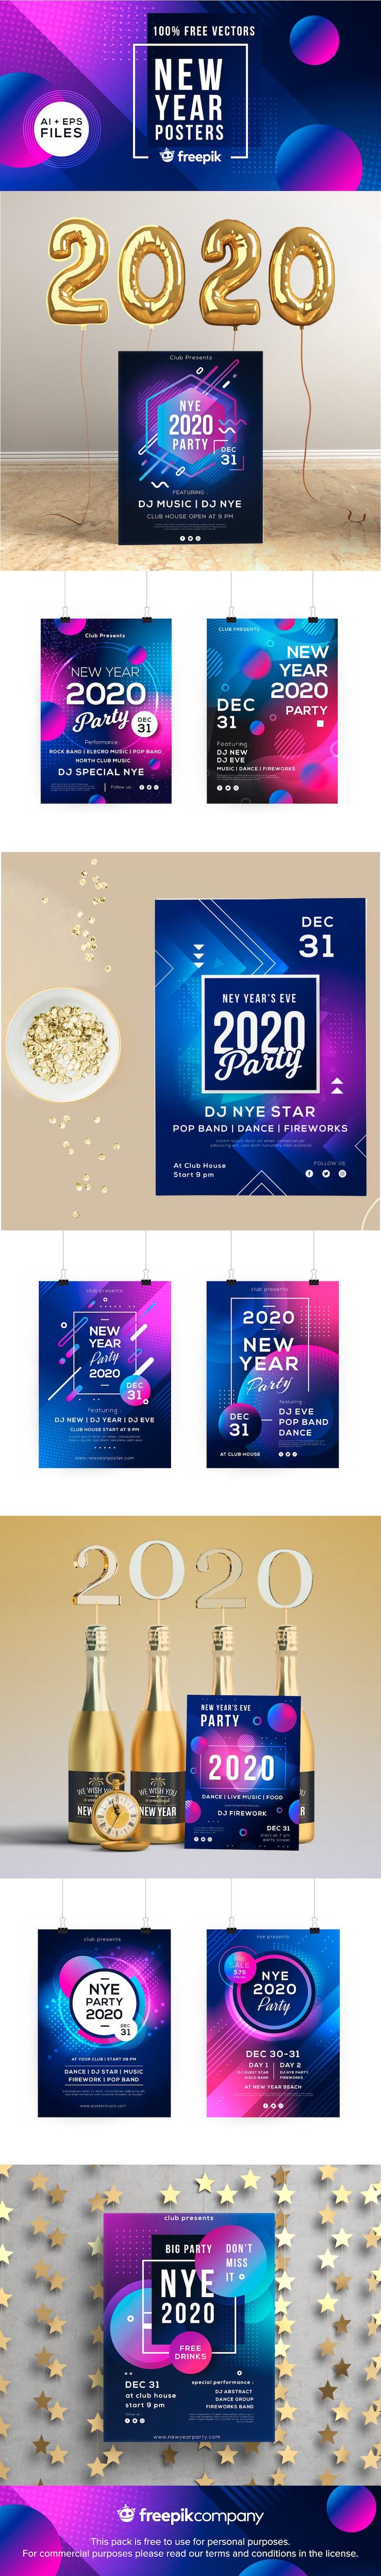 free new year poster templates ai